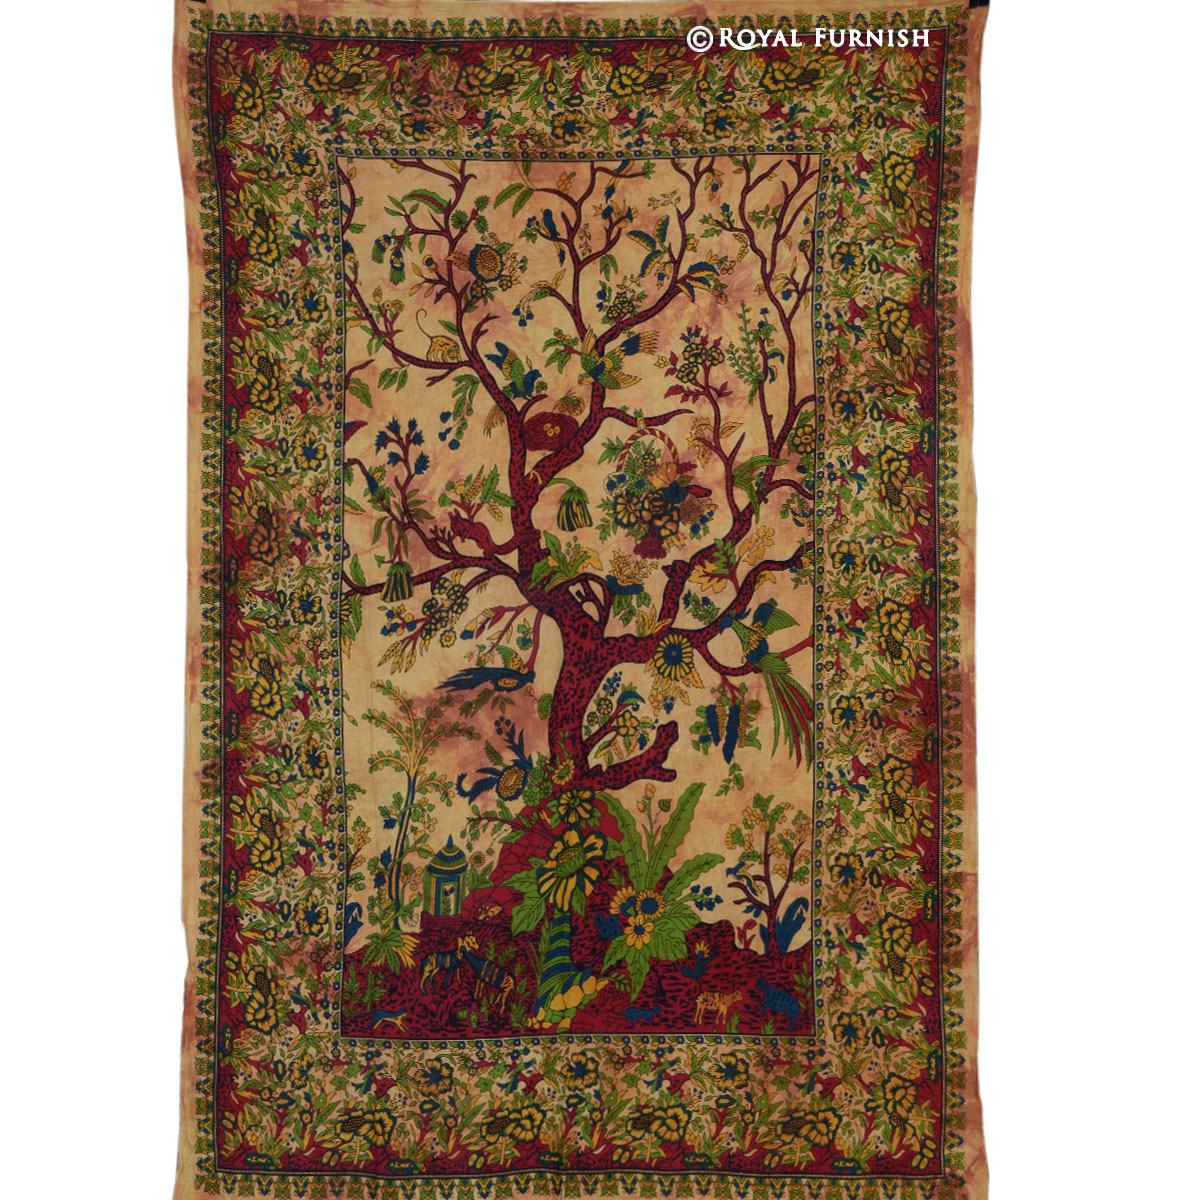 Wall Hanging Art Deco Tapestry : Brown twin tree of life cotton fabric tapestry wall